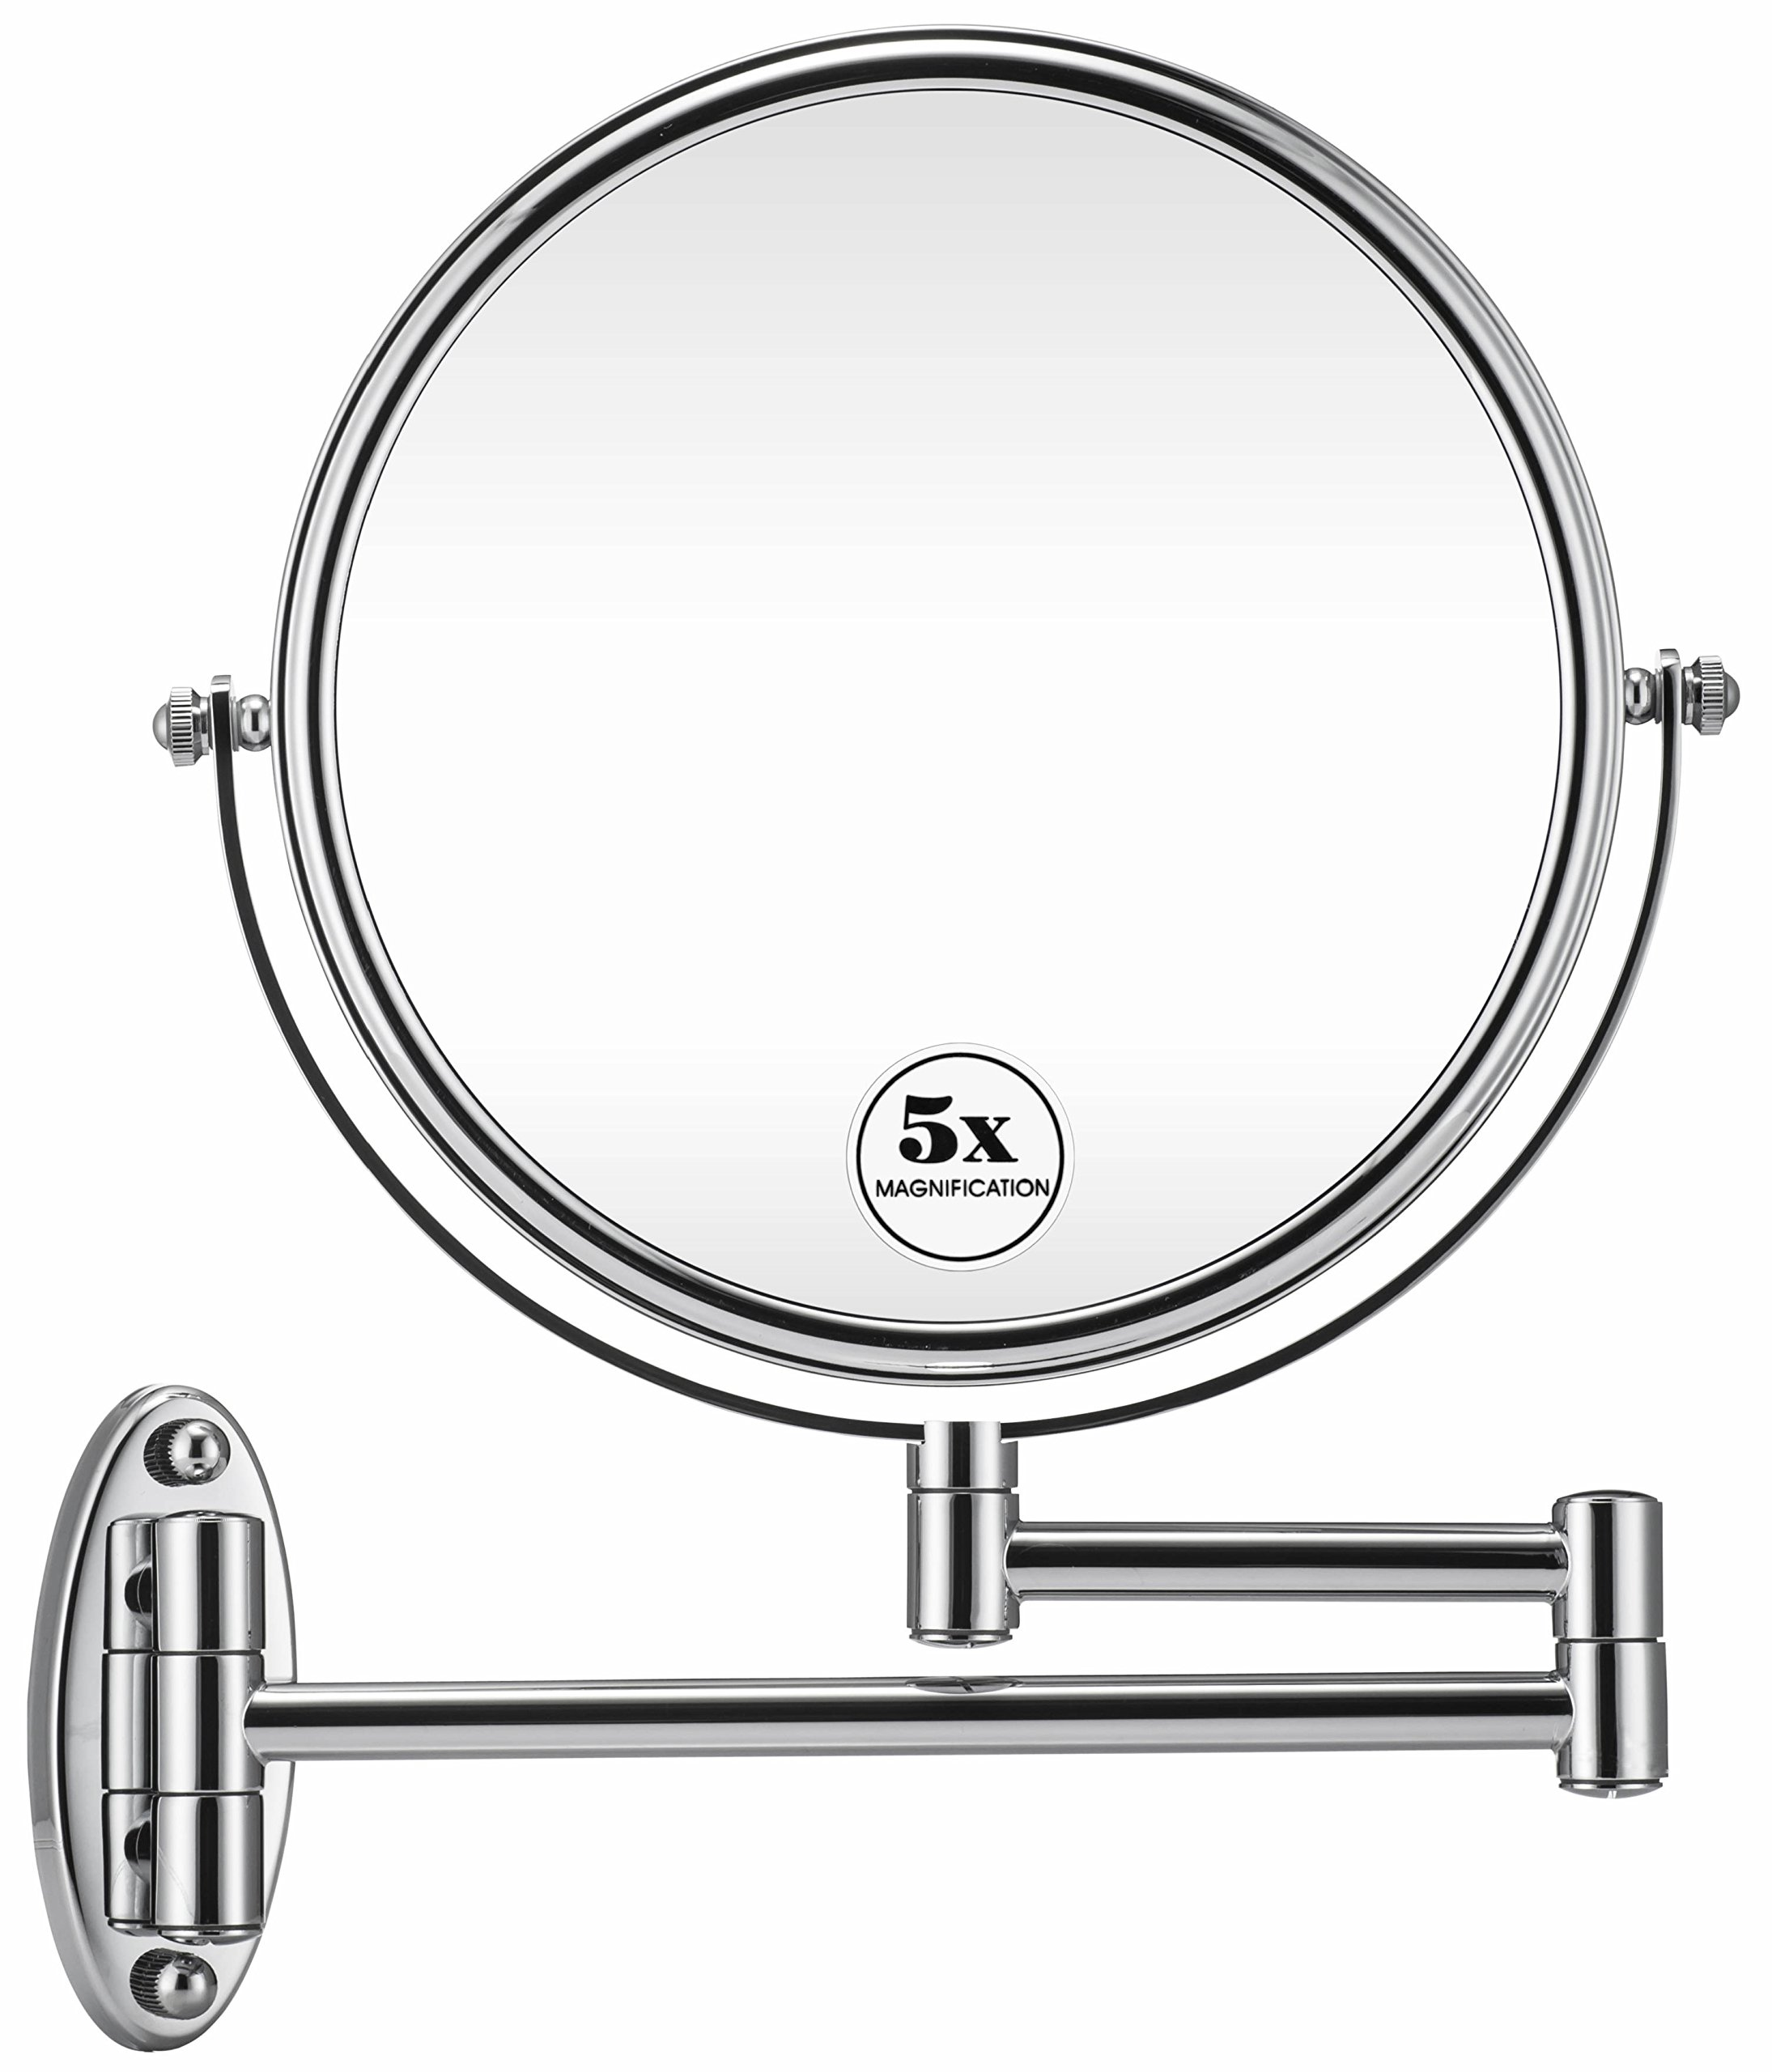 GloRiastar Wall Mount Makeup Mirror,1x/5x Magnification, 8-Inch,Chrome